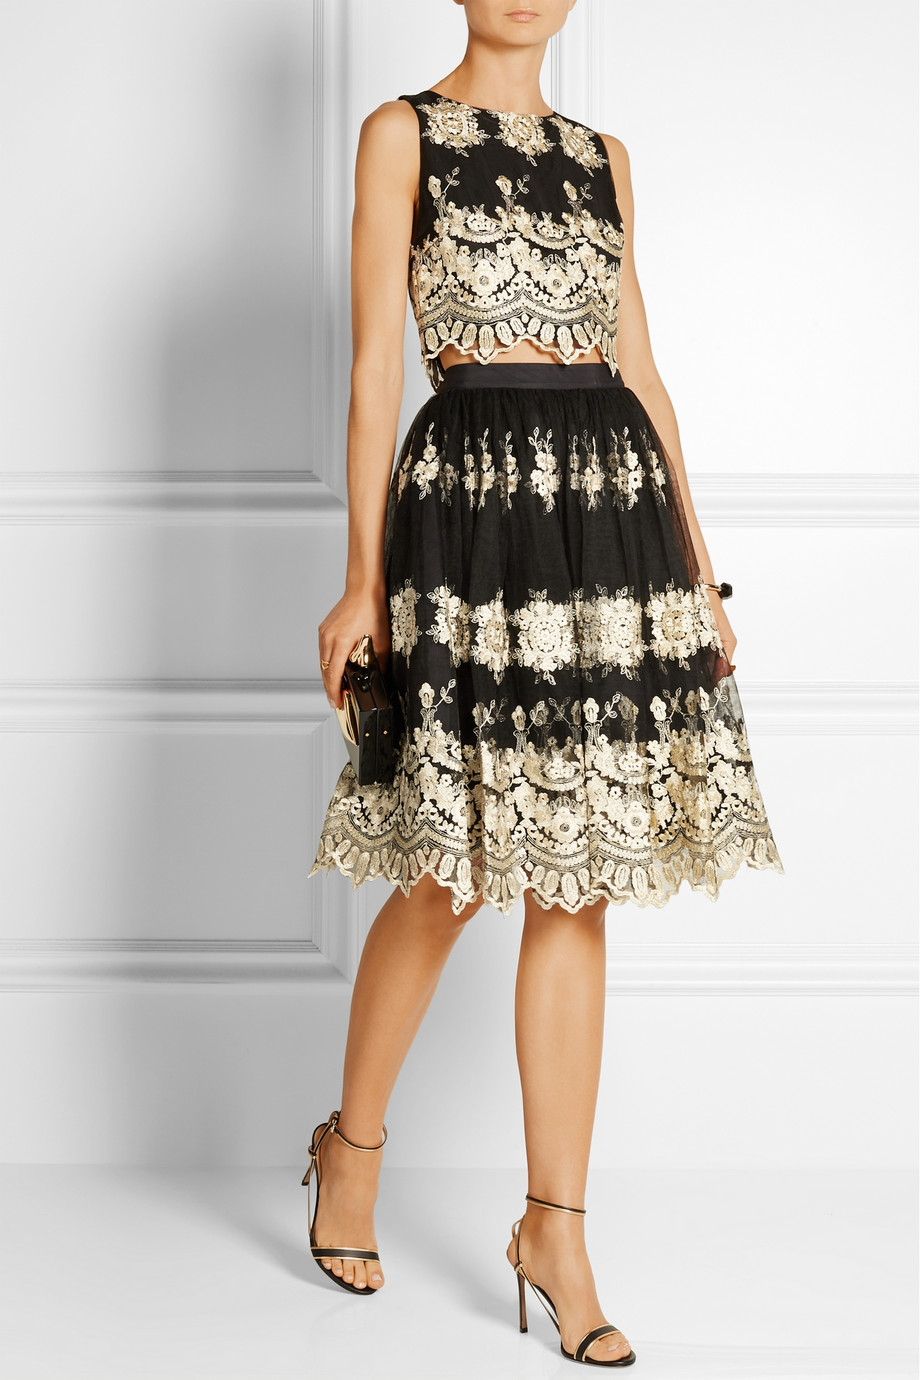 54fefd17ffe Holiday Wedding Guest Outfit-Alice Olivia Justina Top Skirt